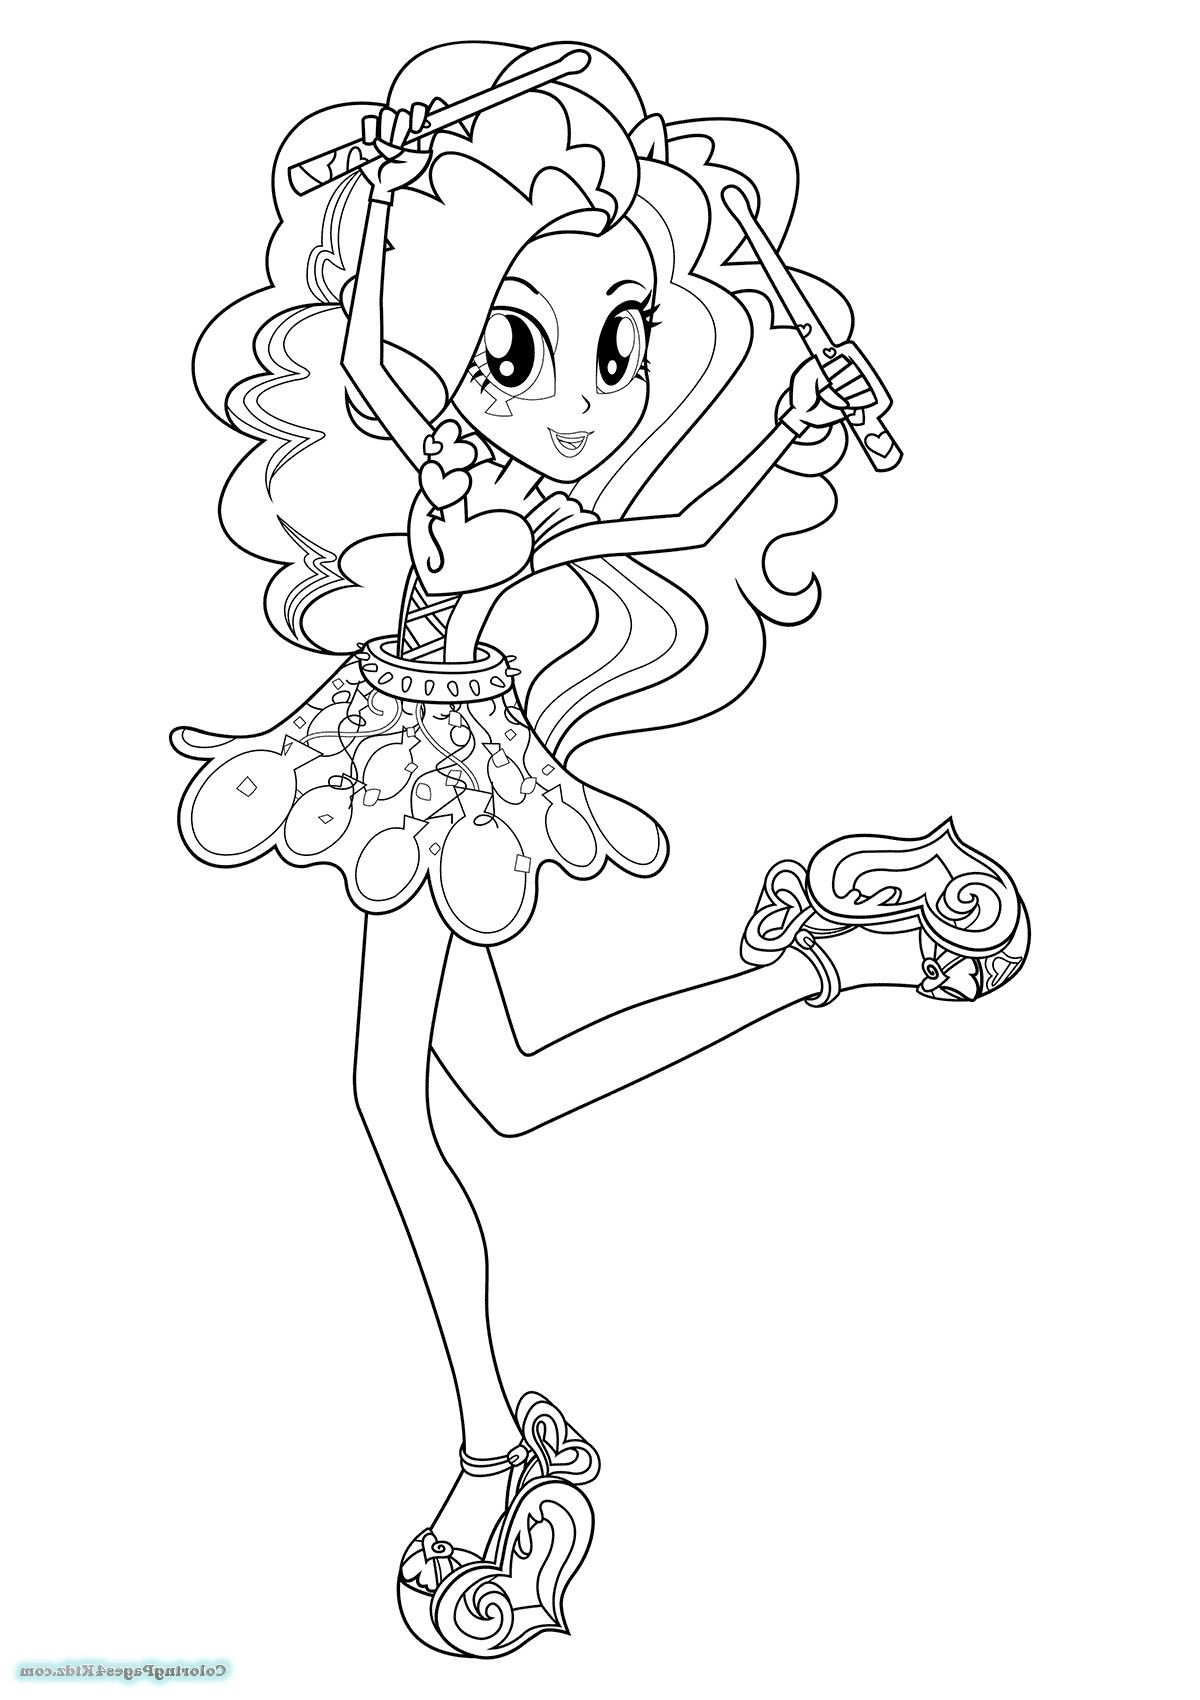 Rainbow Rock Coloring Pages Nocl Equestria Girls Coloring Pages